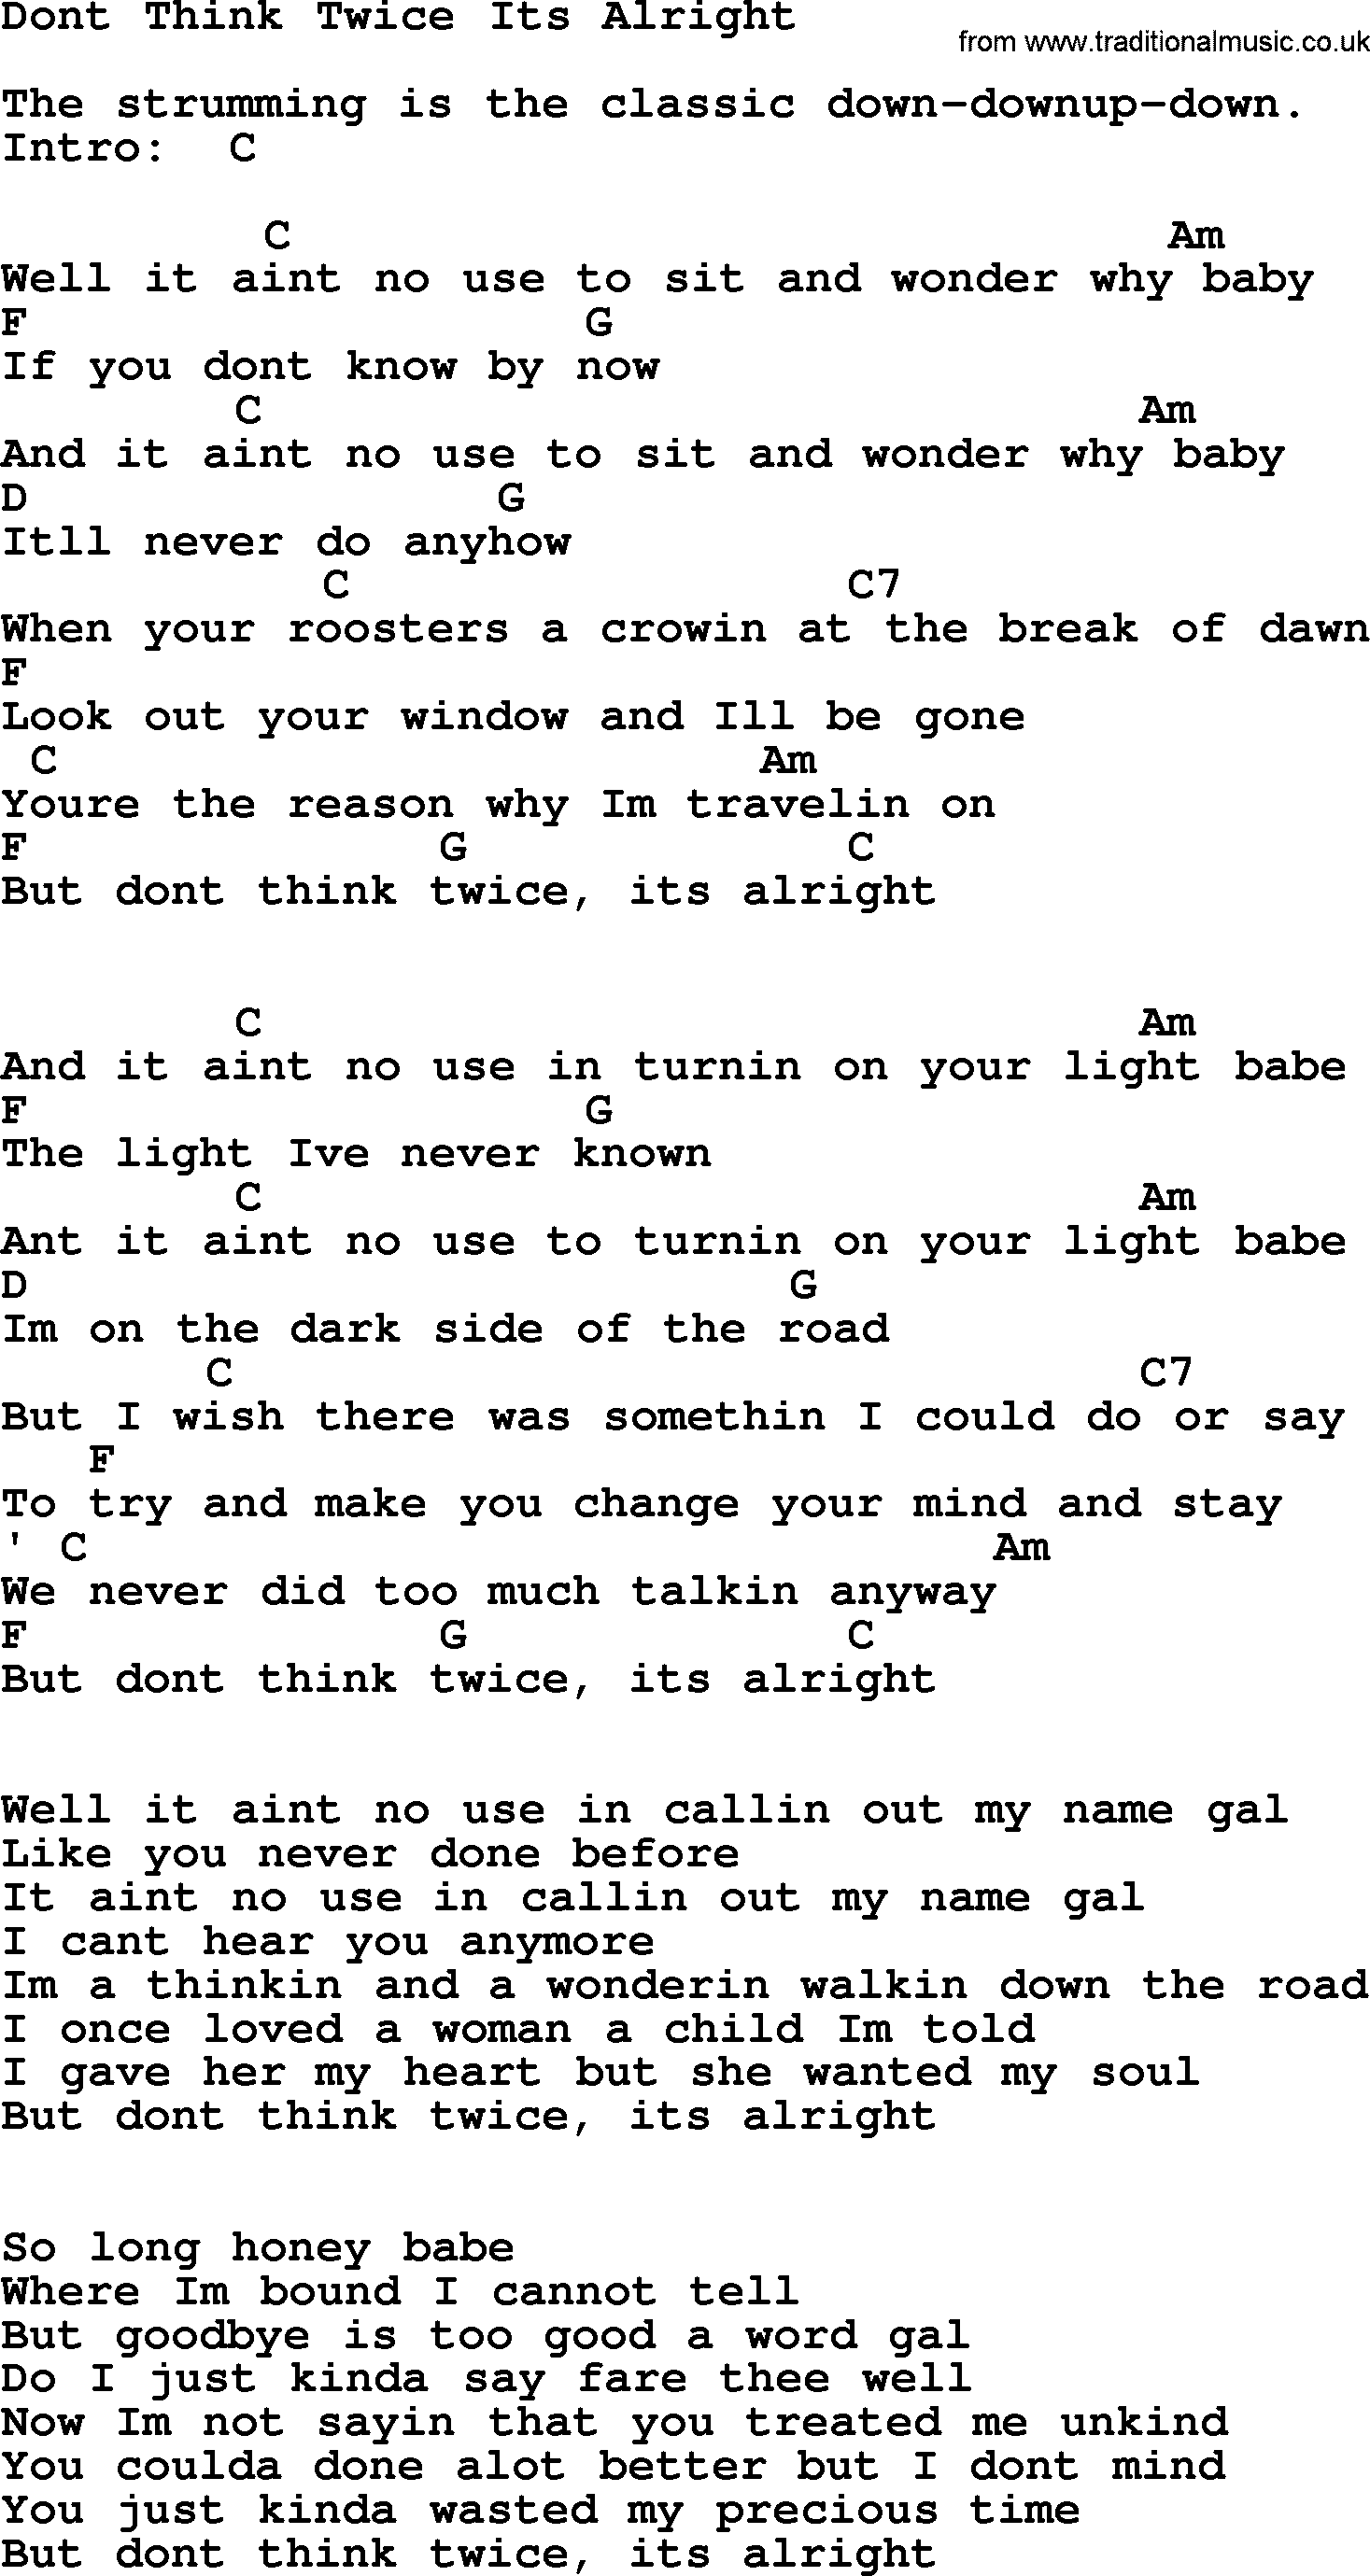 Johnny Cash Song Dont Think Twice Its Alright Lyrics And Chords